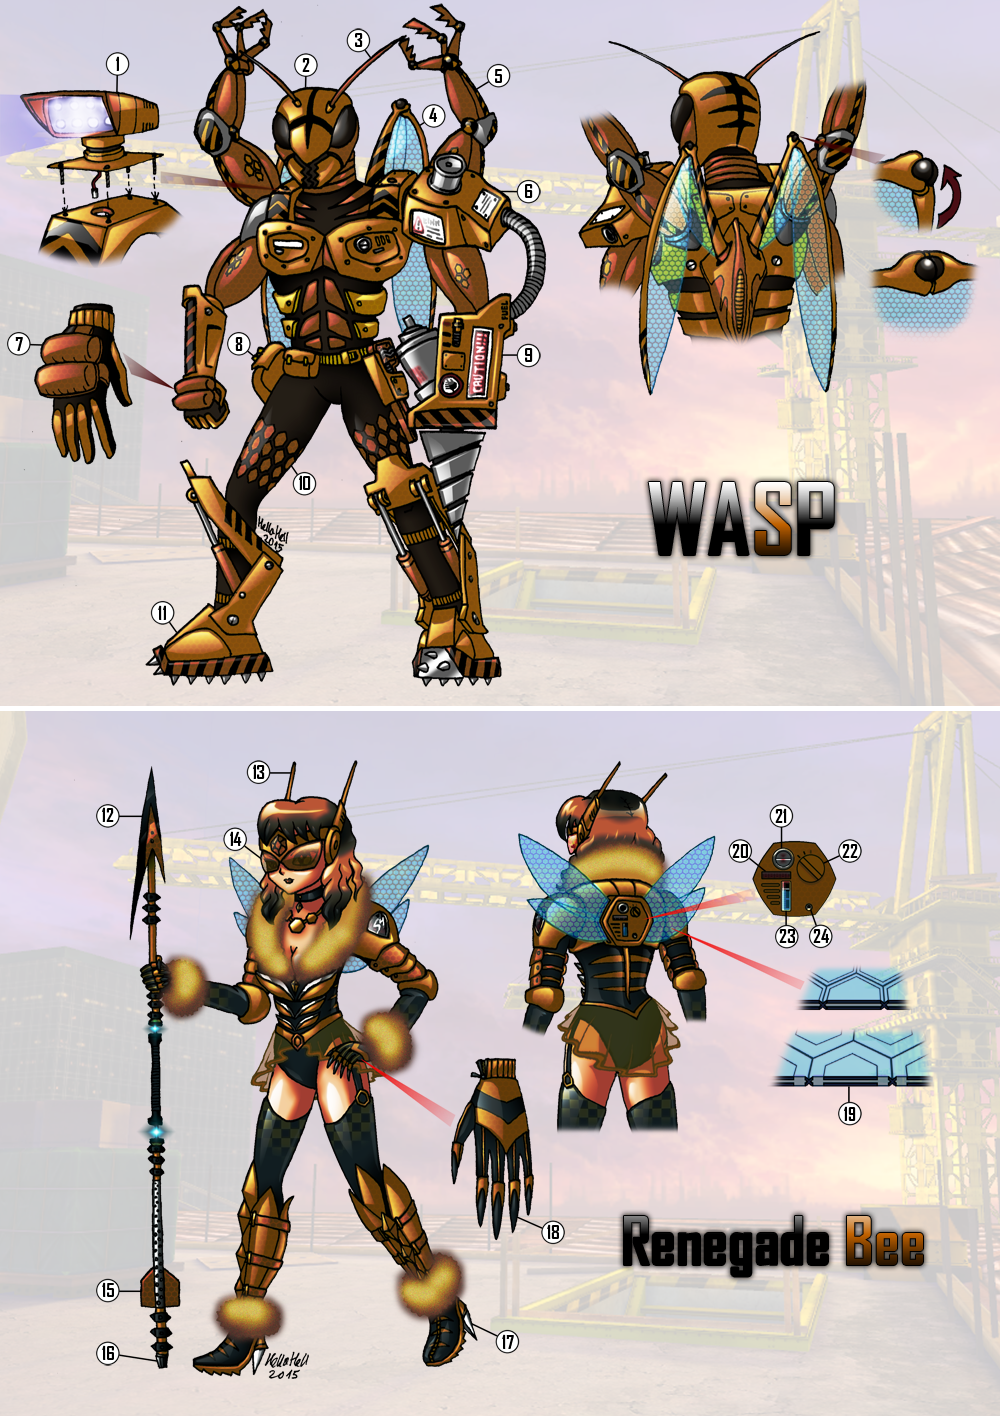 wasp_and_renegade_bee_by_hellafromhell-d9eob0w.png